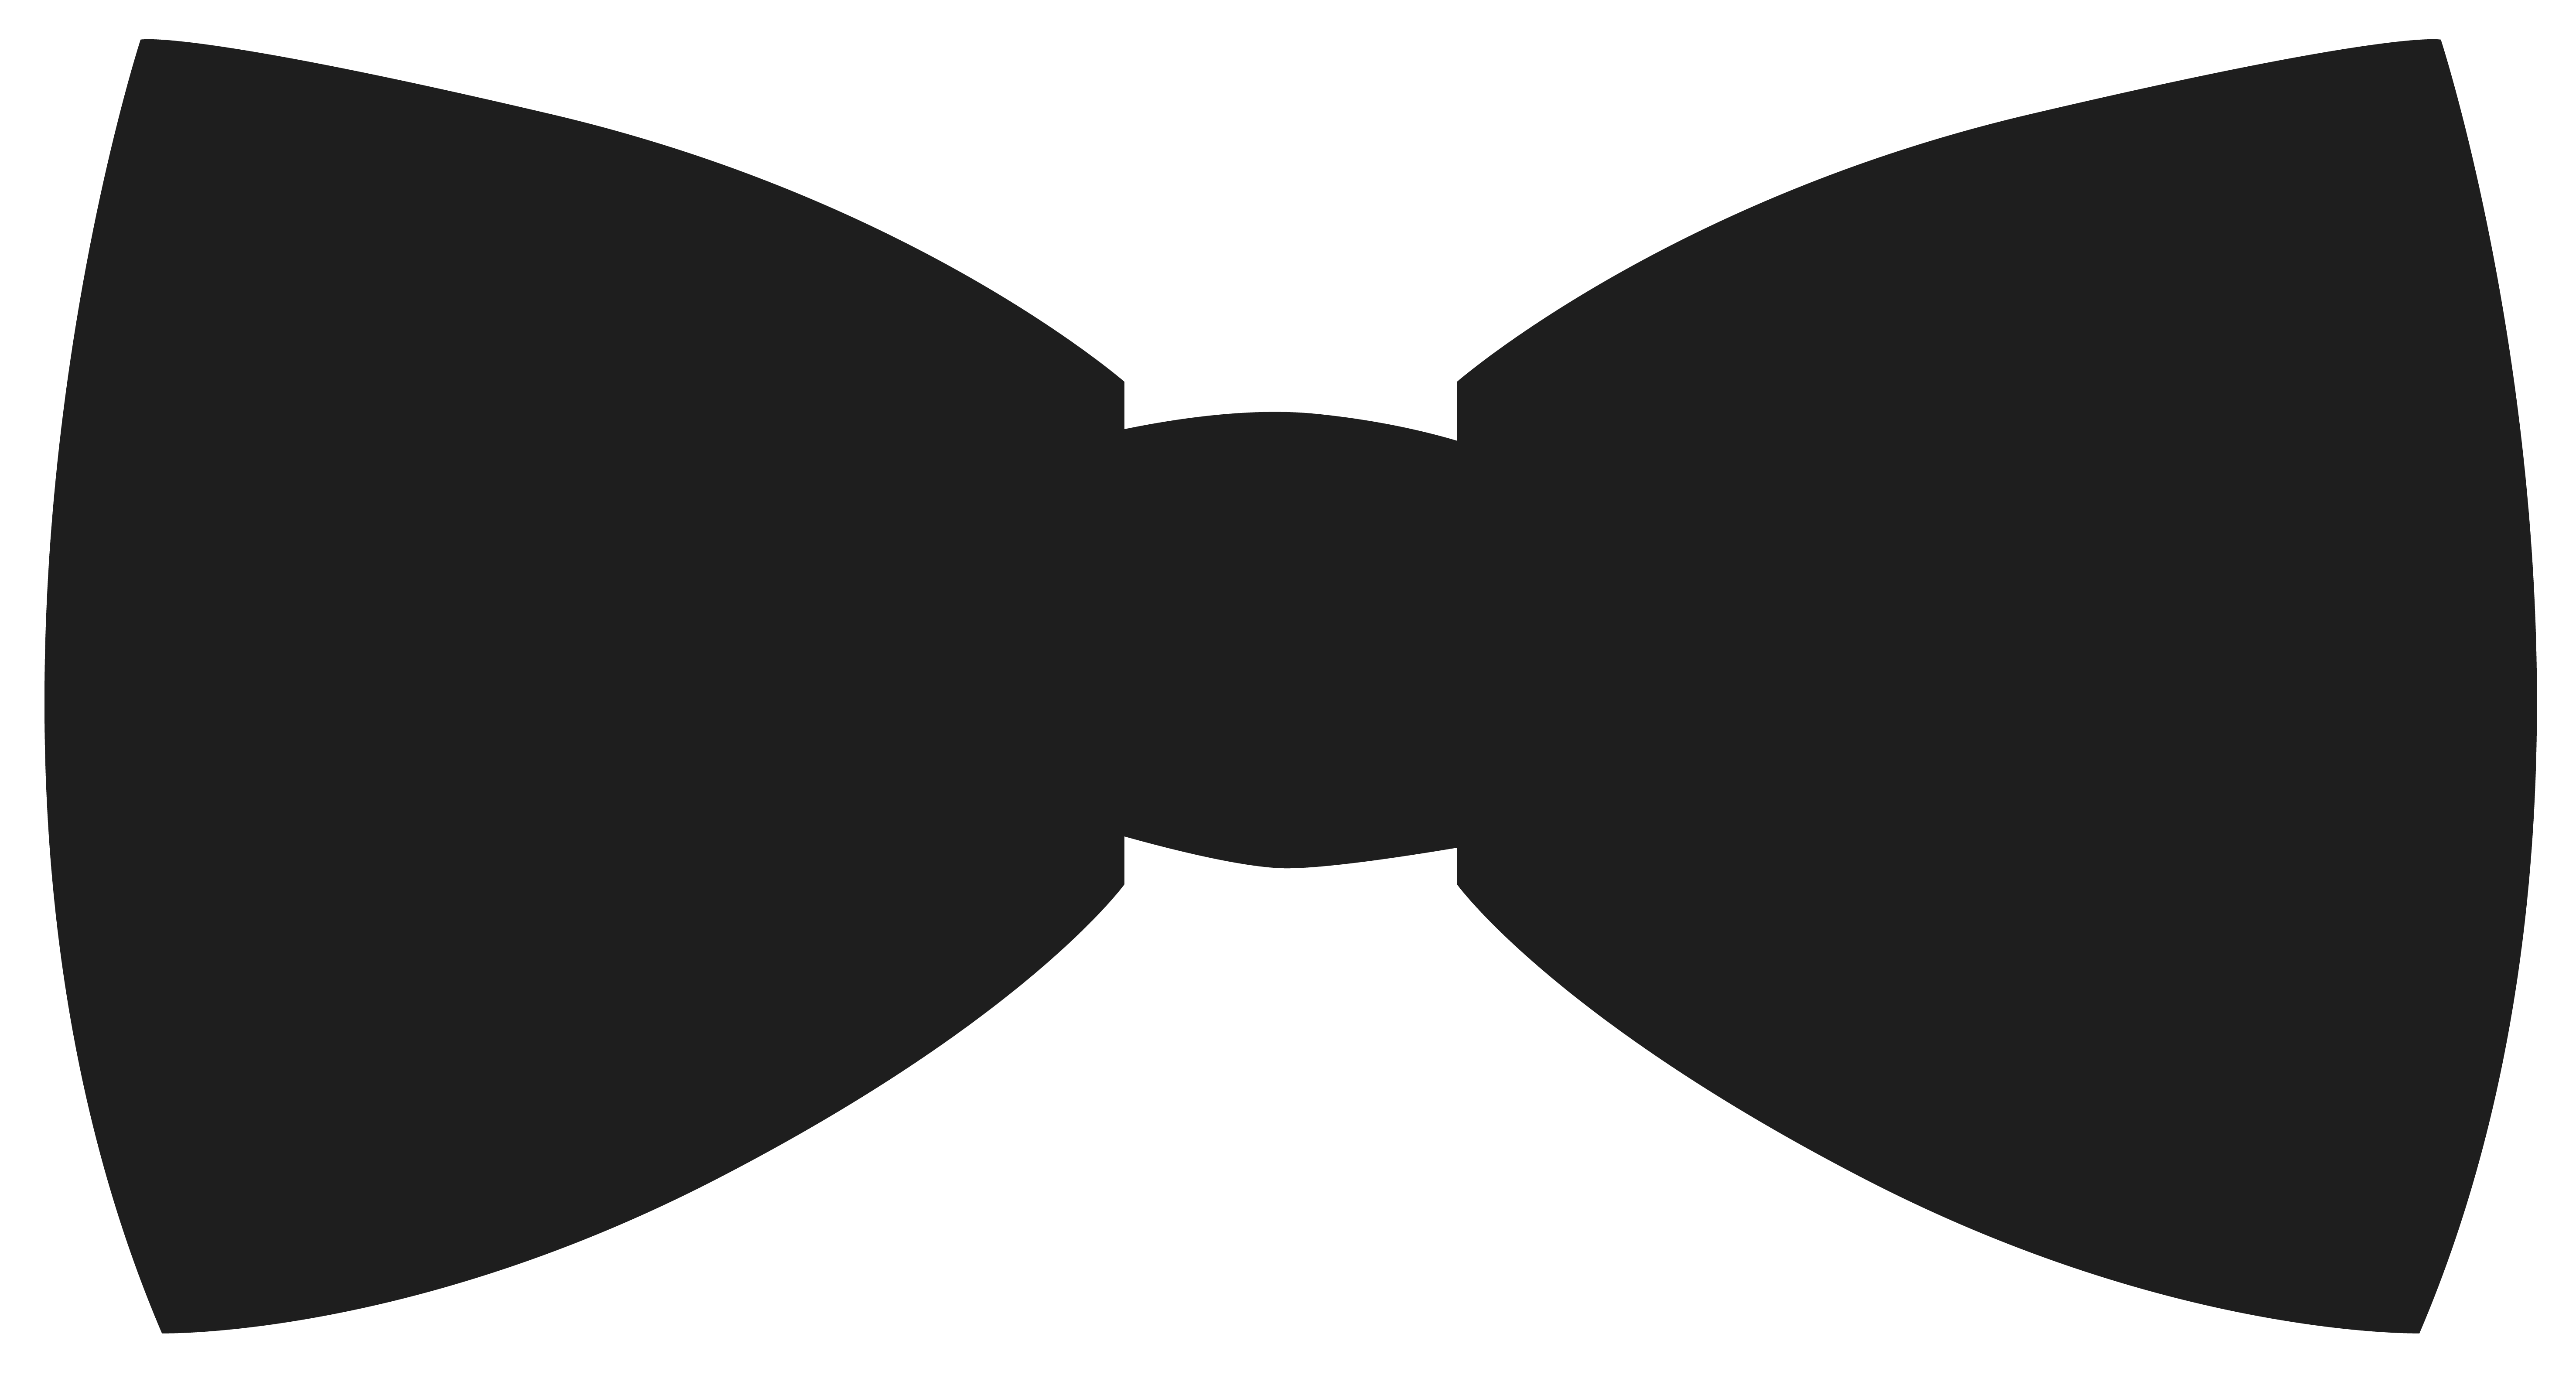 5906x3160 Movember Bowtie Png Clipart Imageu200b Gallery Yopriceville